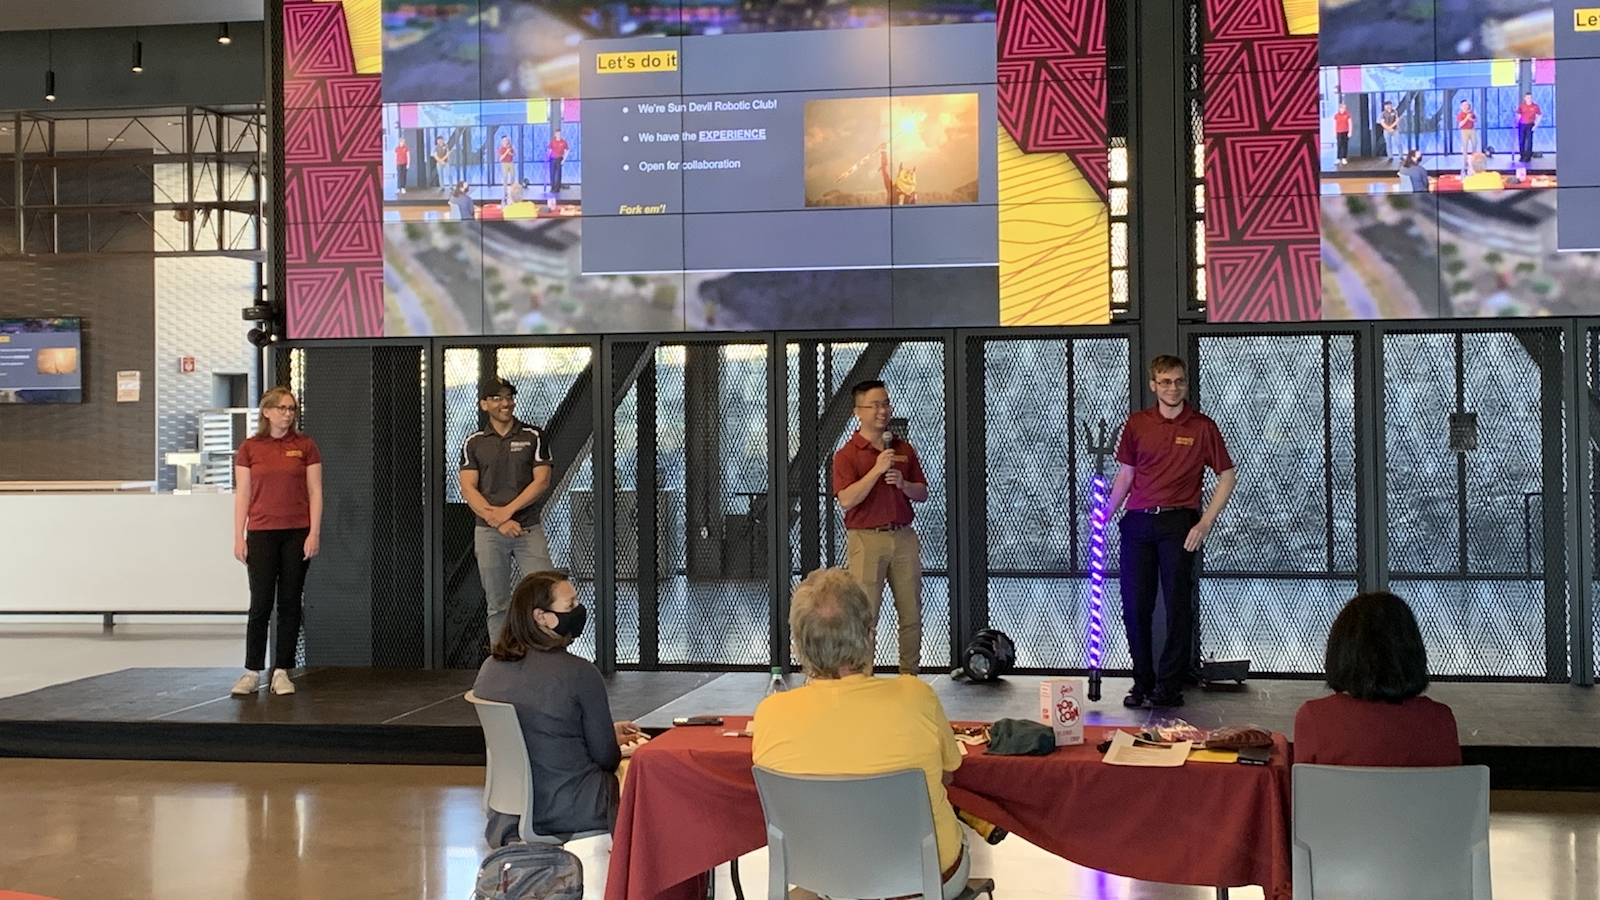 The Sparky's Inferno team presenting during Ignite Sparky